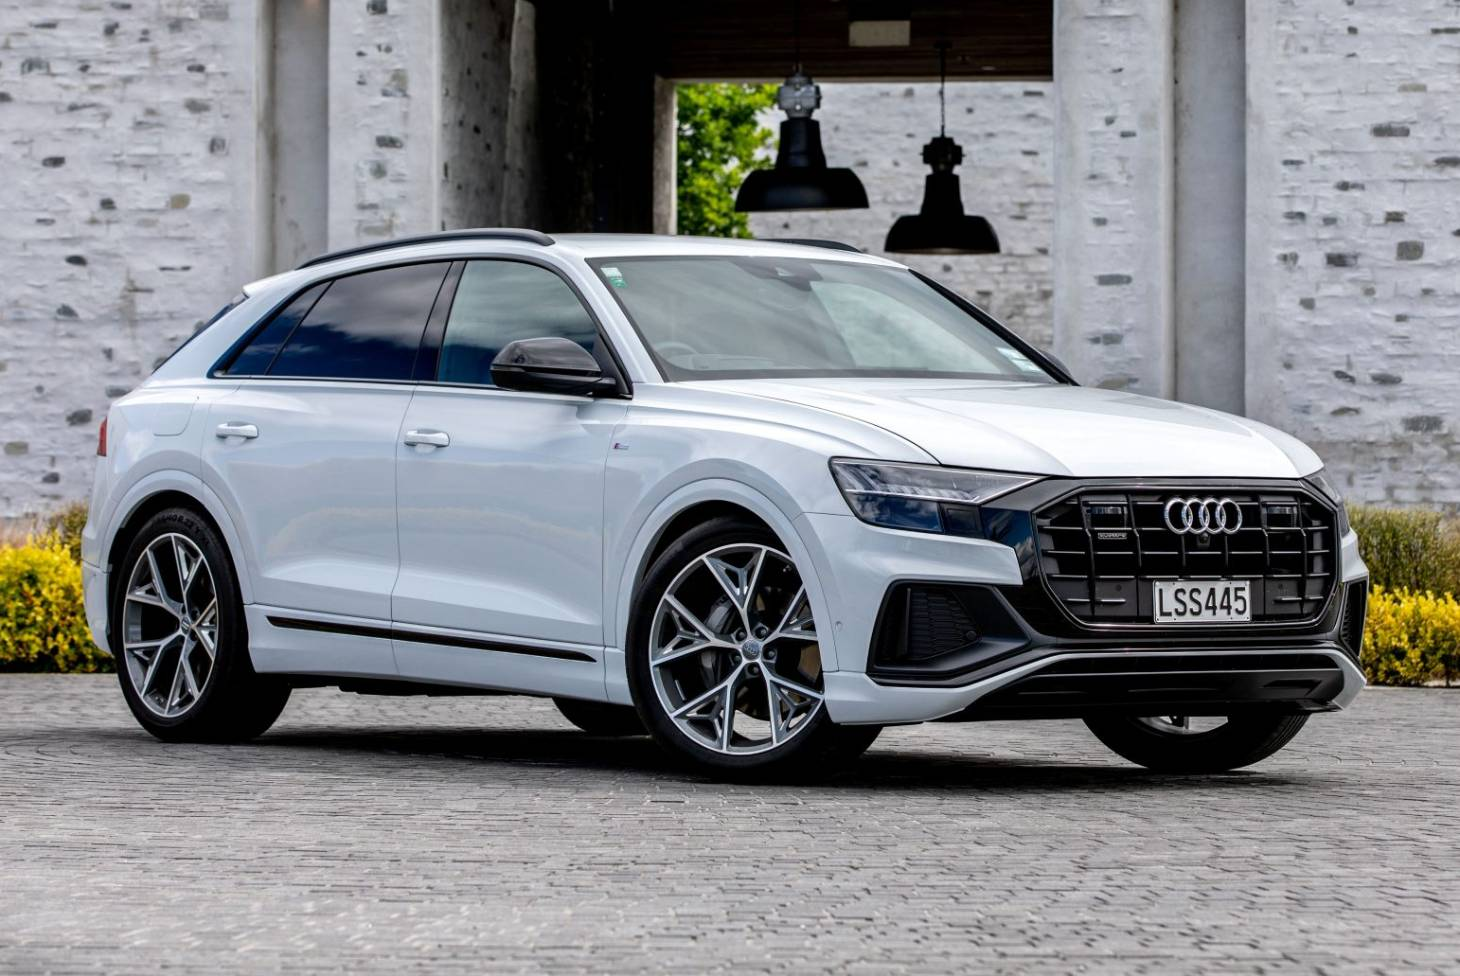 Suv Coupe The Audi Q8 Doesn T Care What You Call It Stuff Co Nz